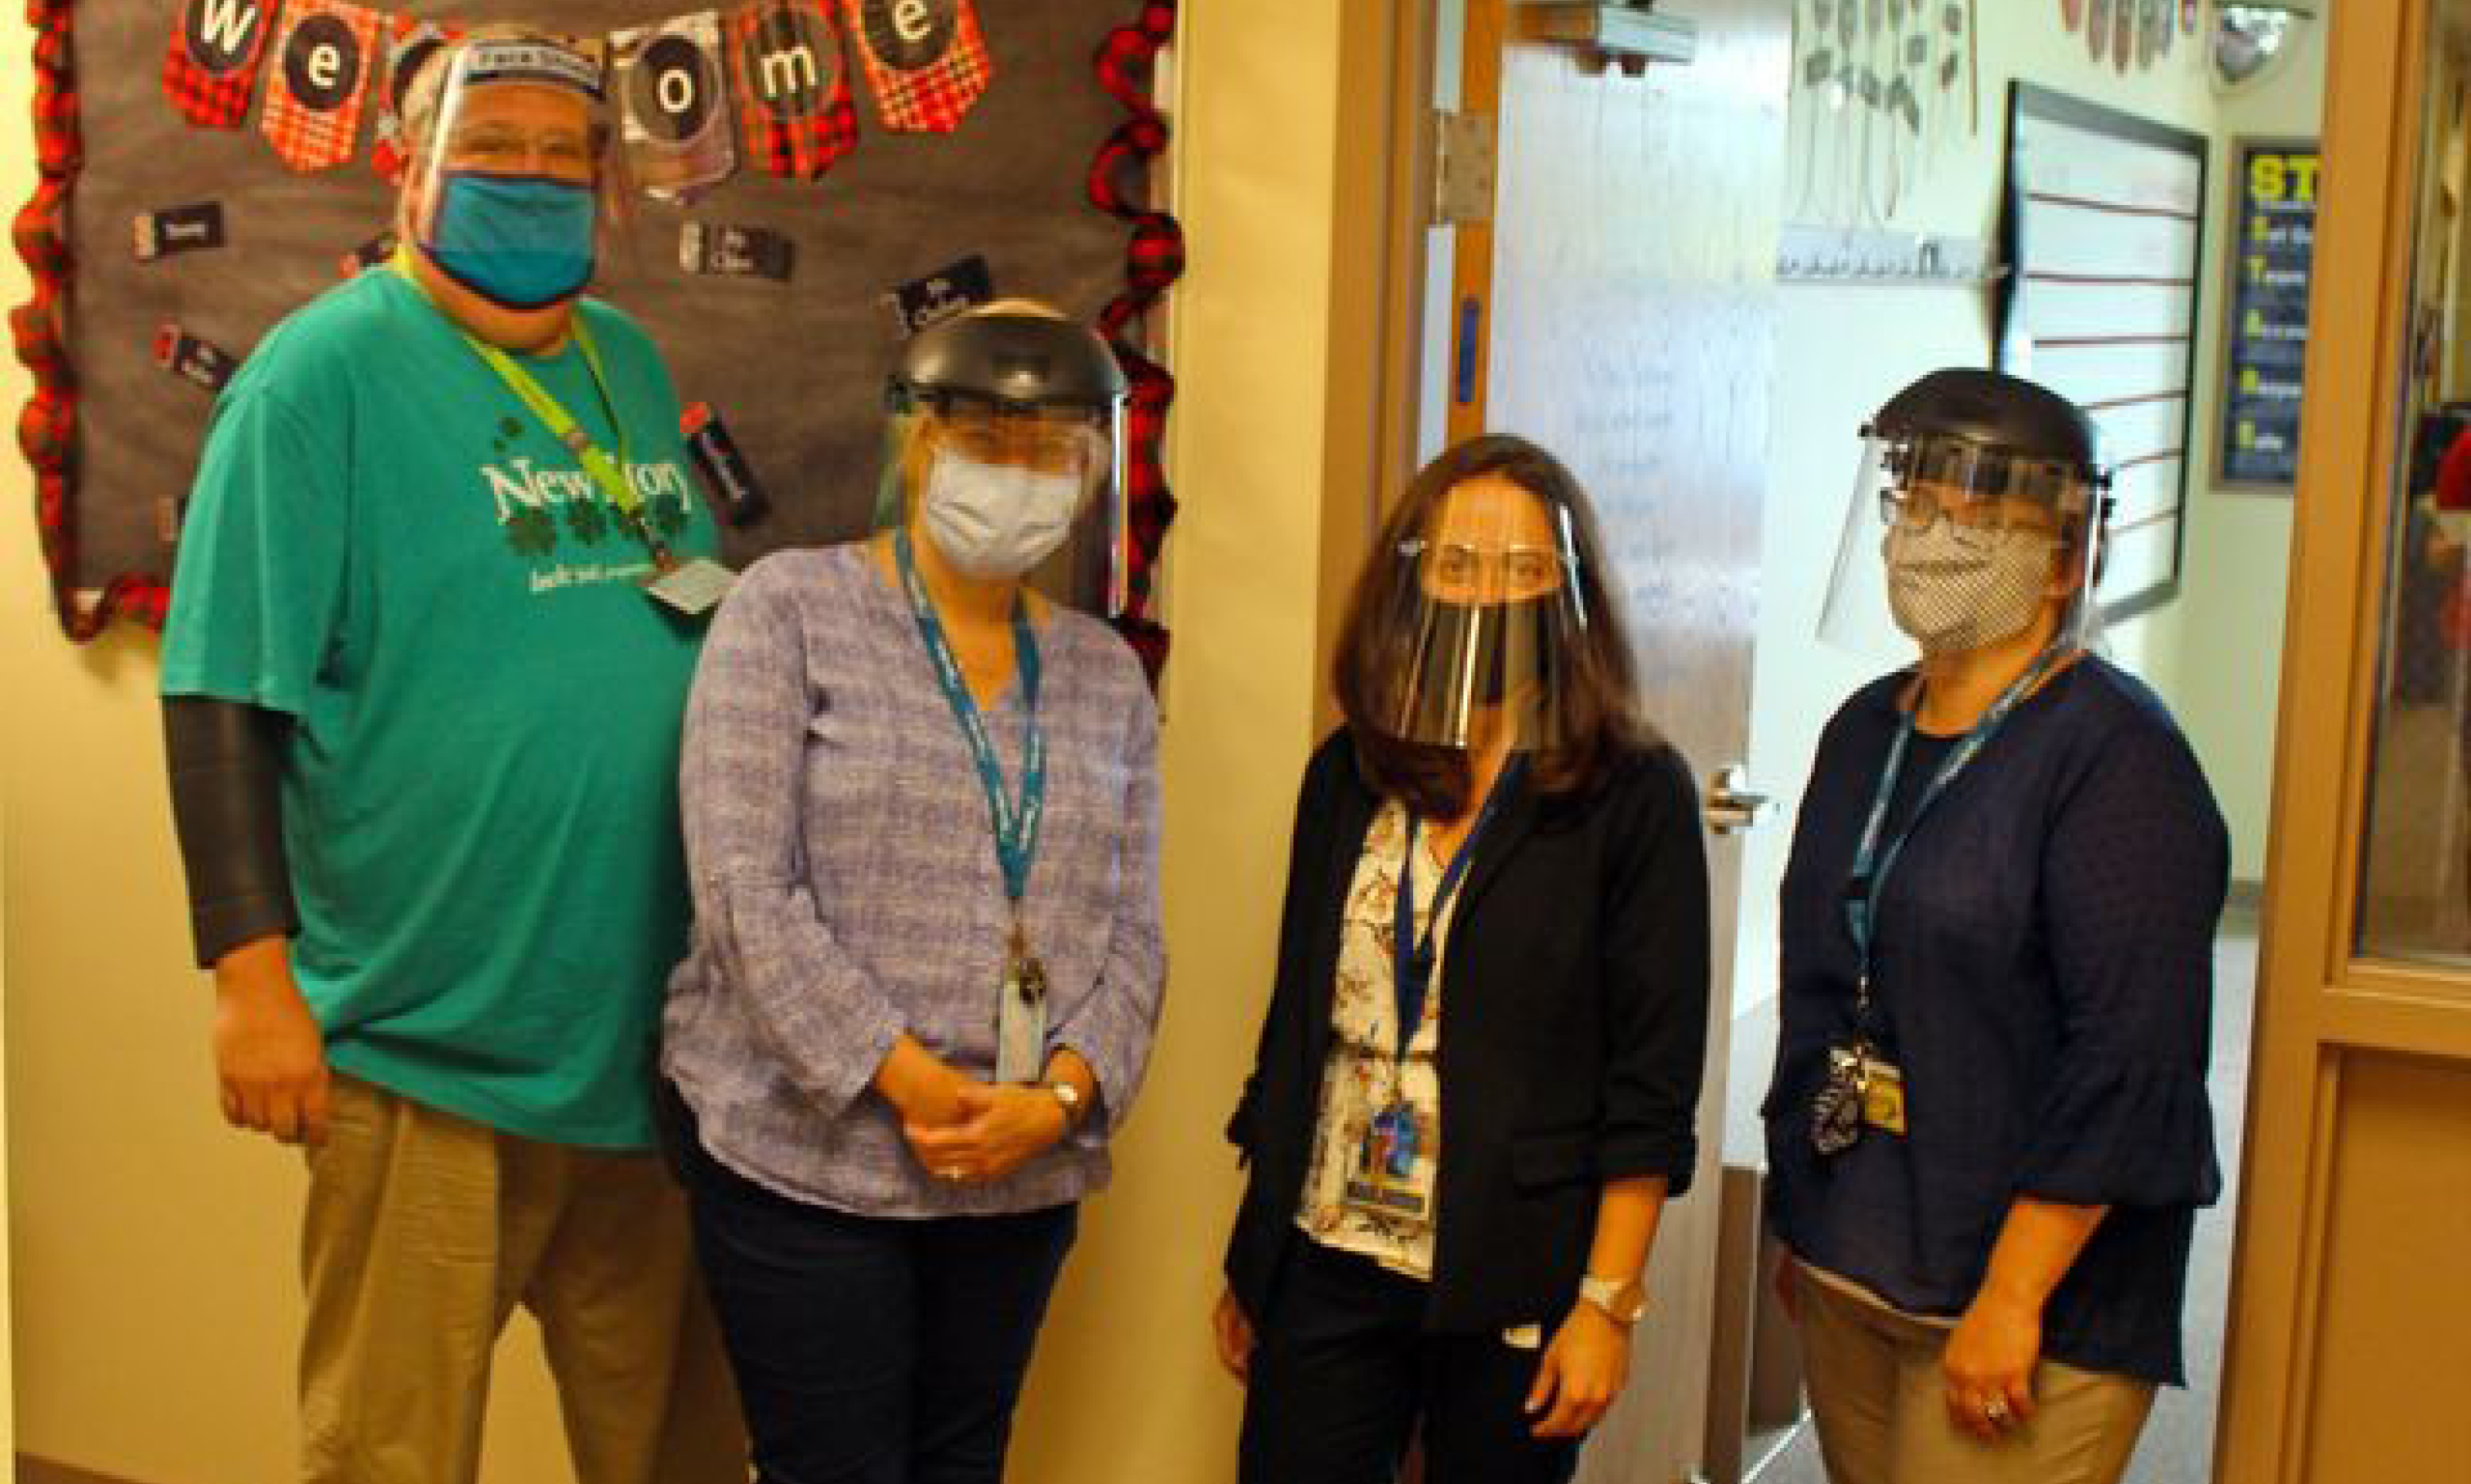 Special Education Staff with masks